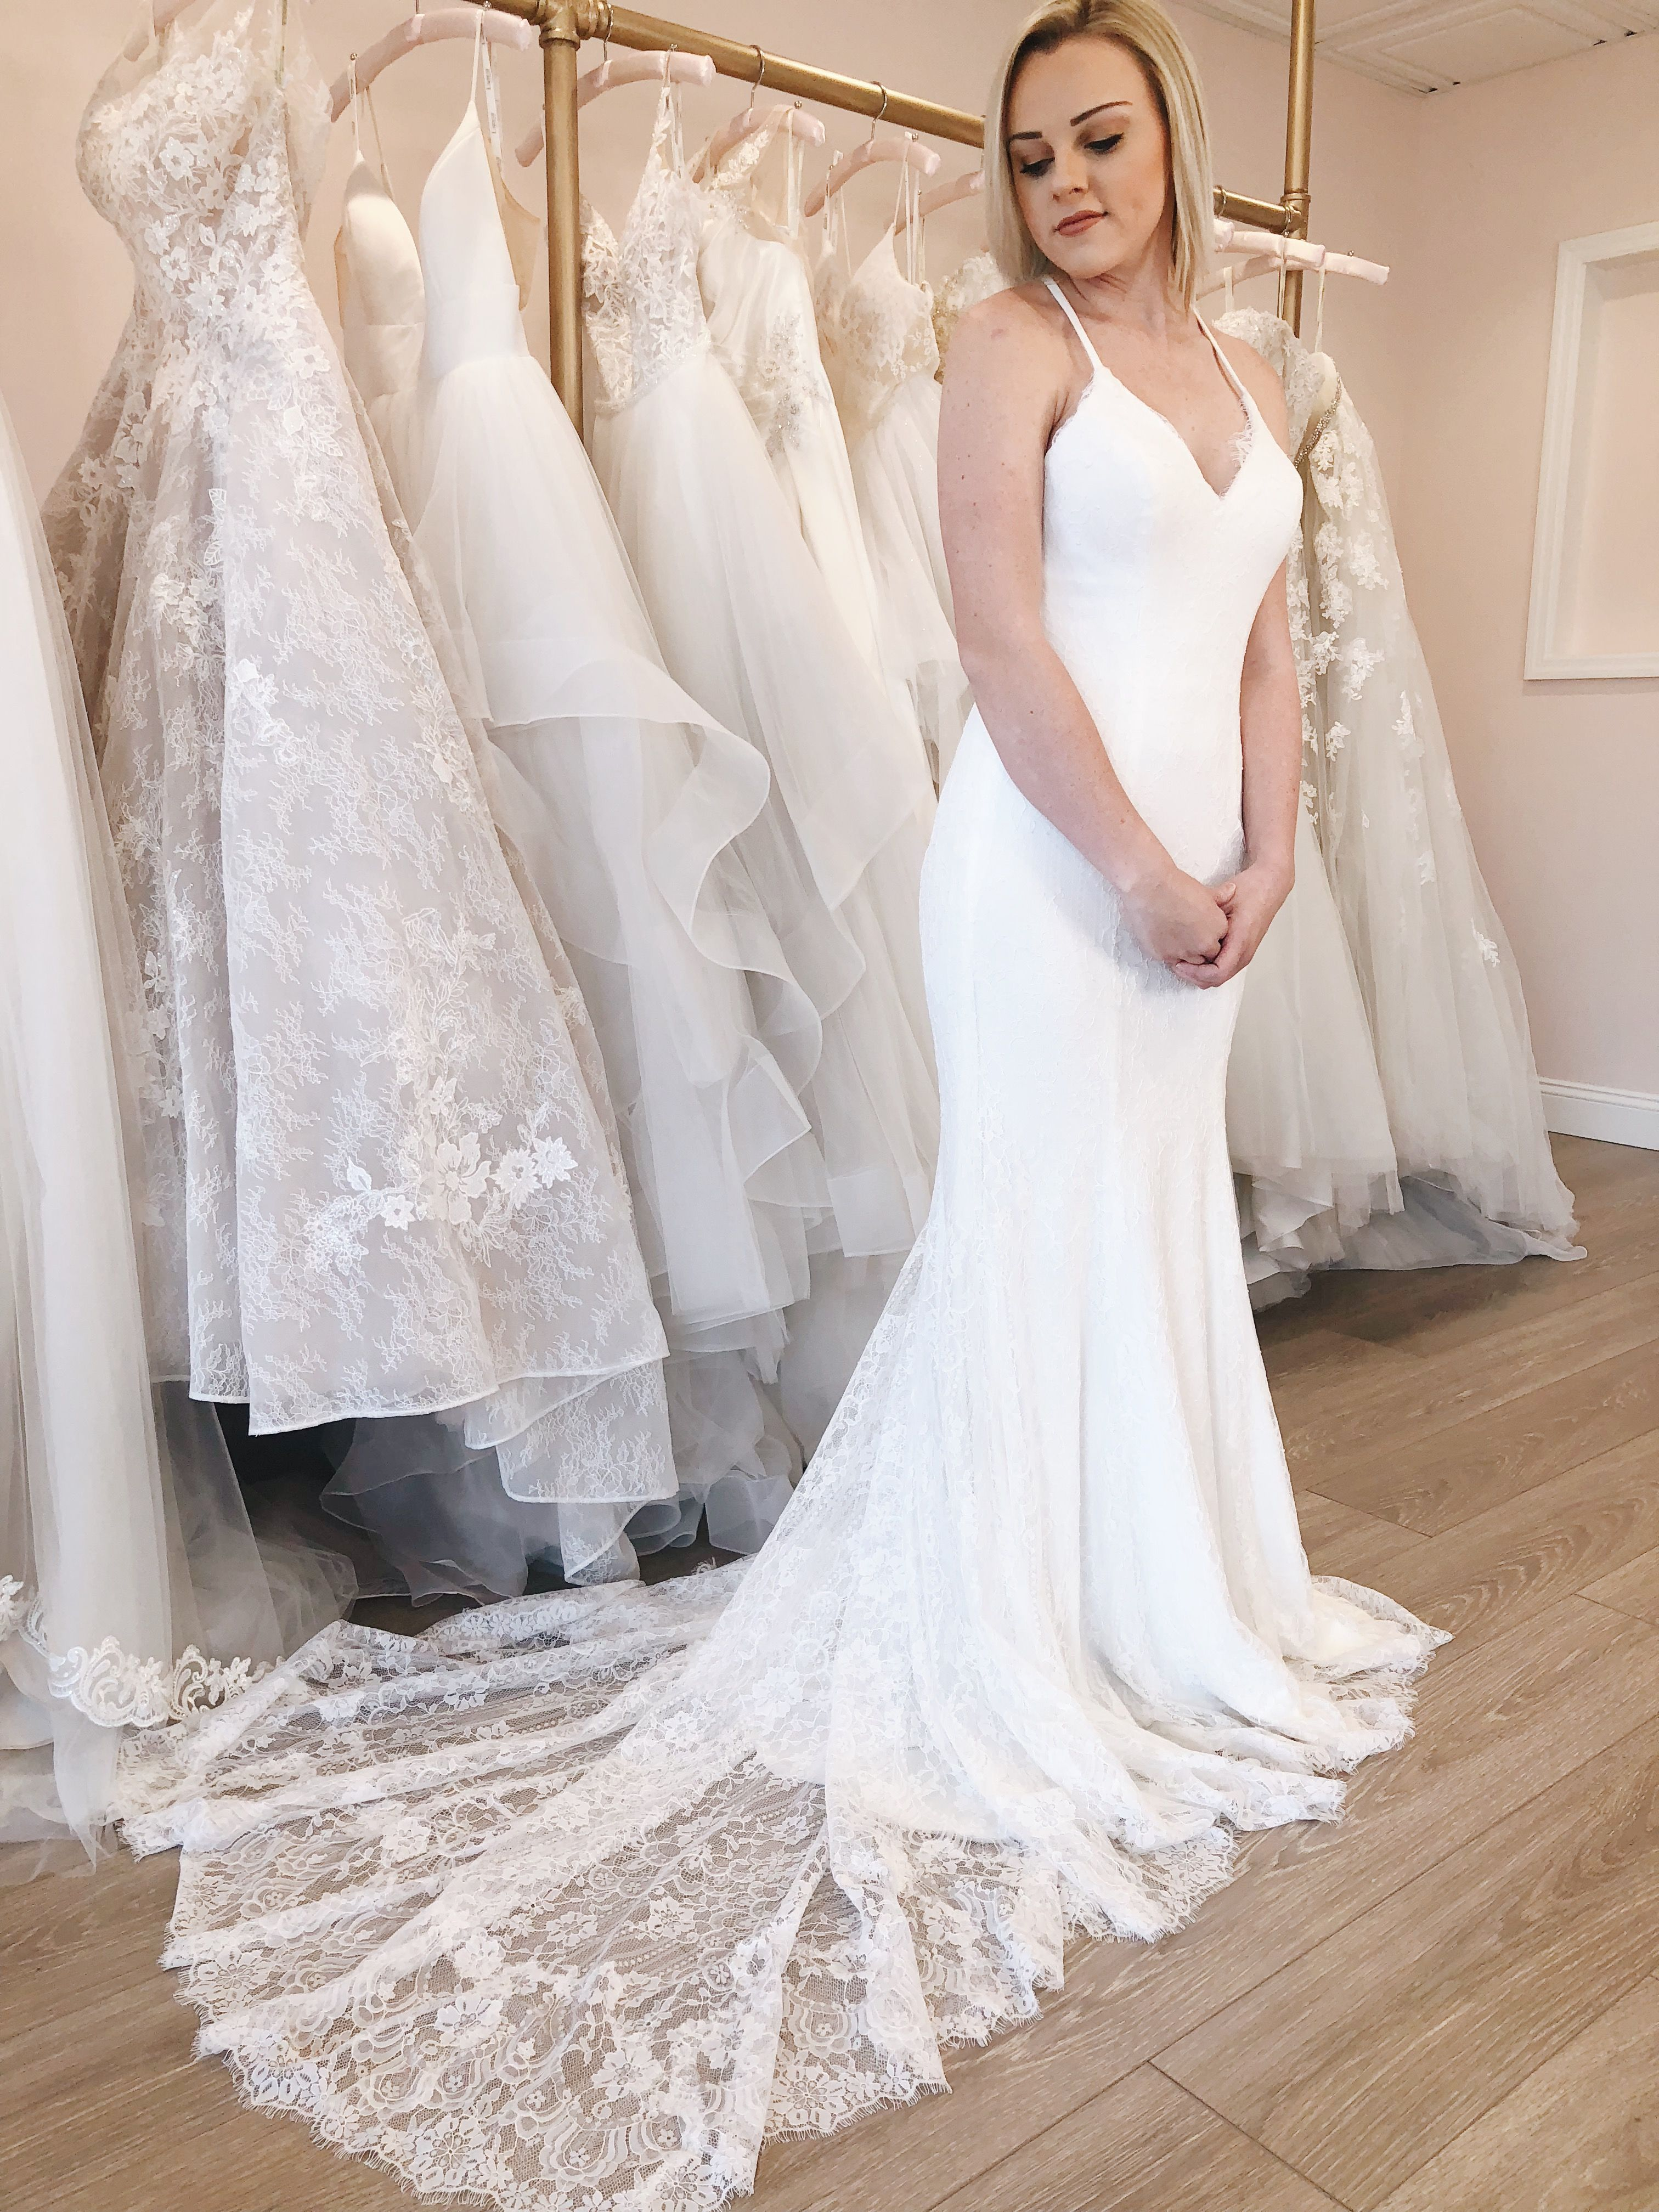 6746325f547f The Angelina gown is absolutely perfect for a #boho bride or a  #beachwedding! #bride #engaged #weddingdress